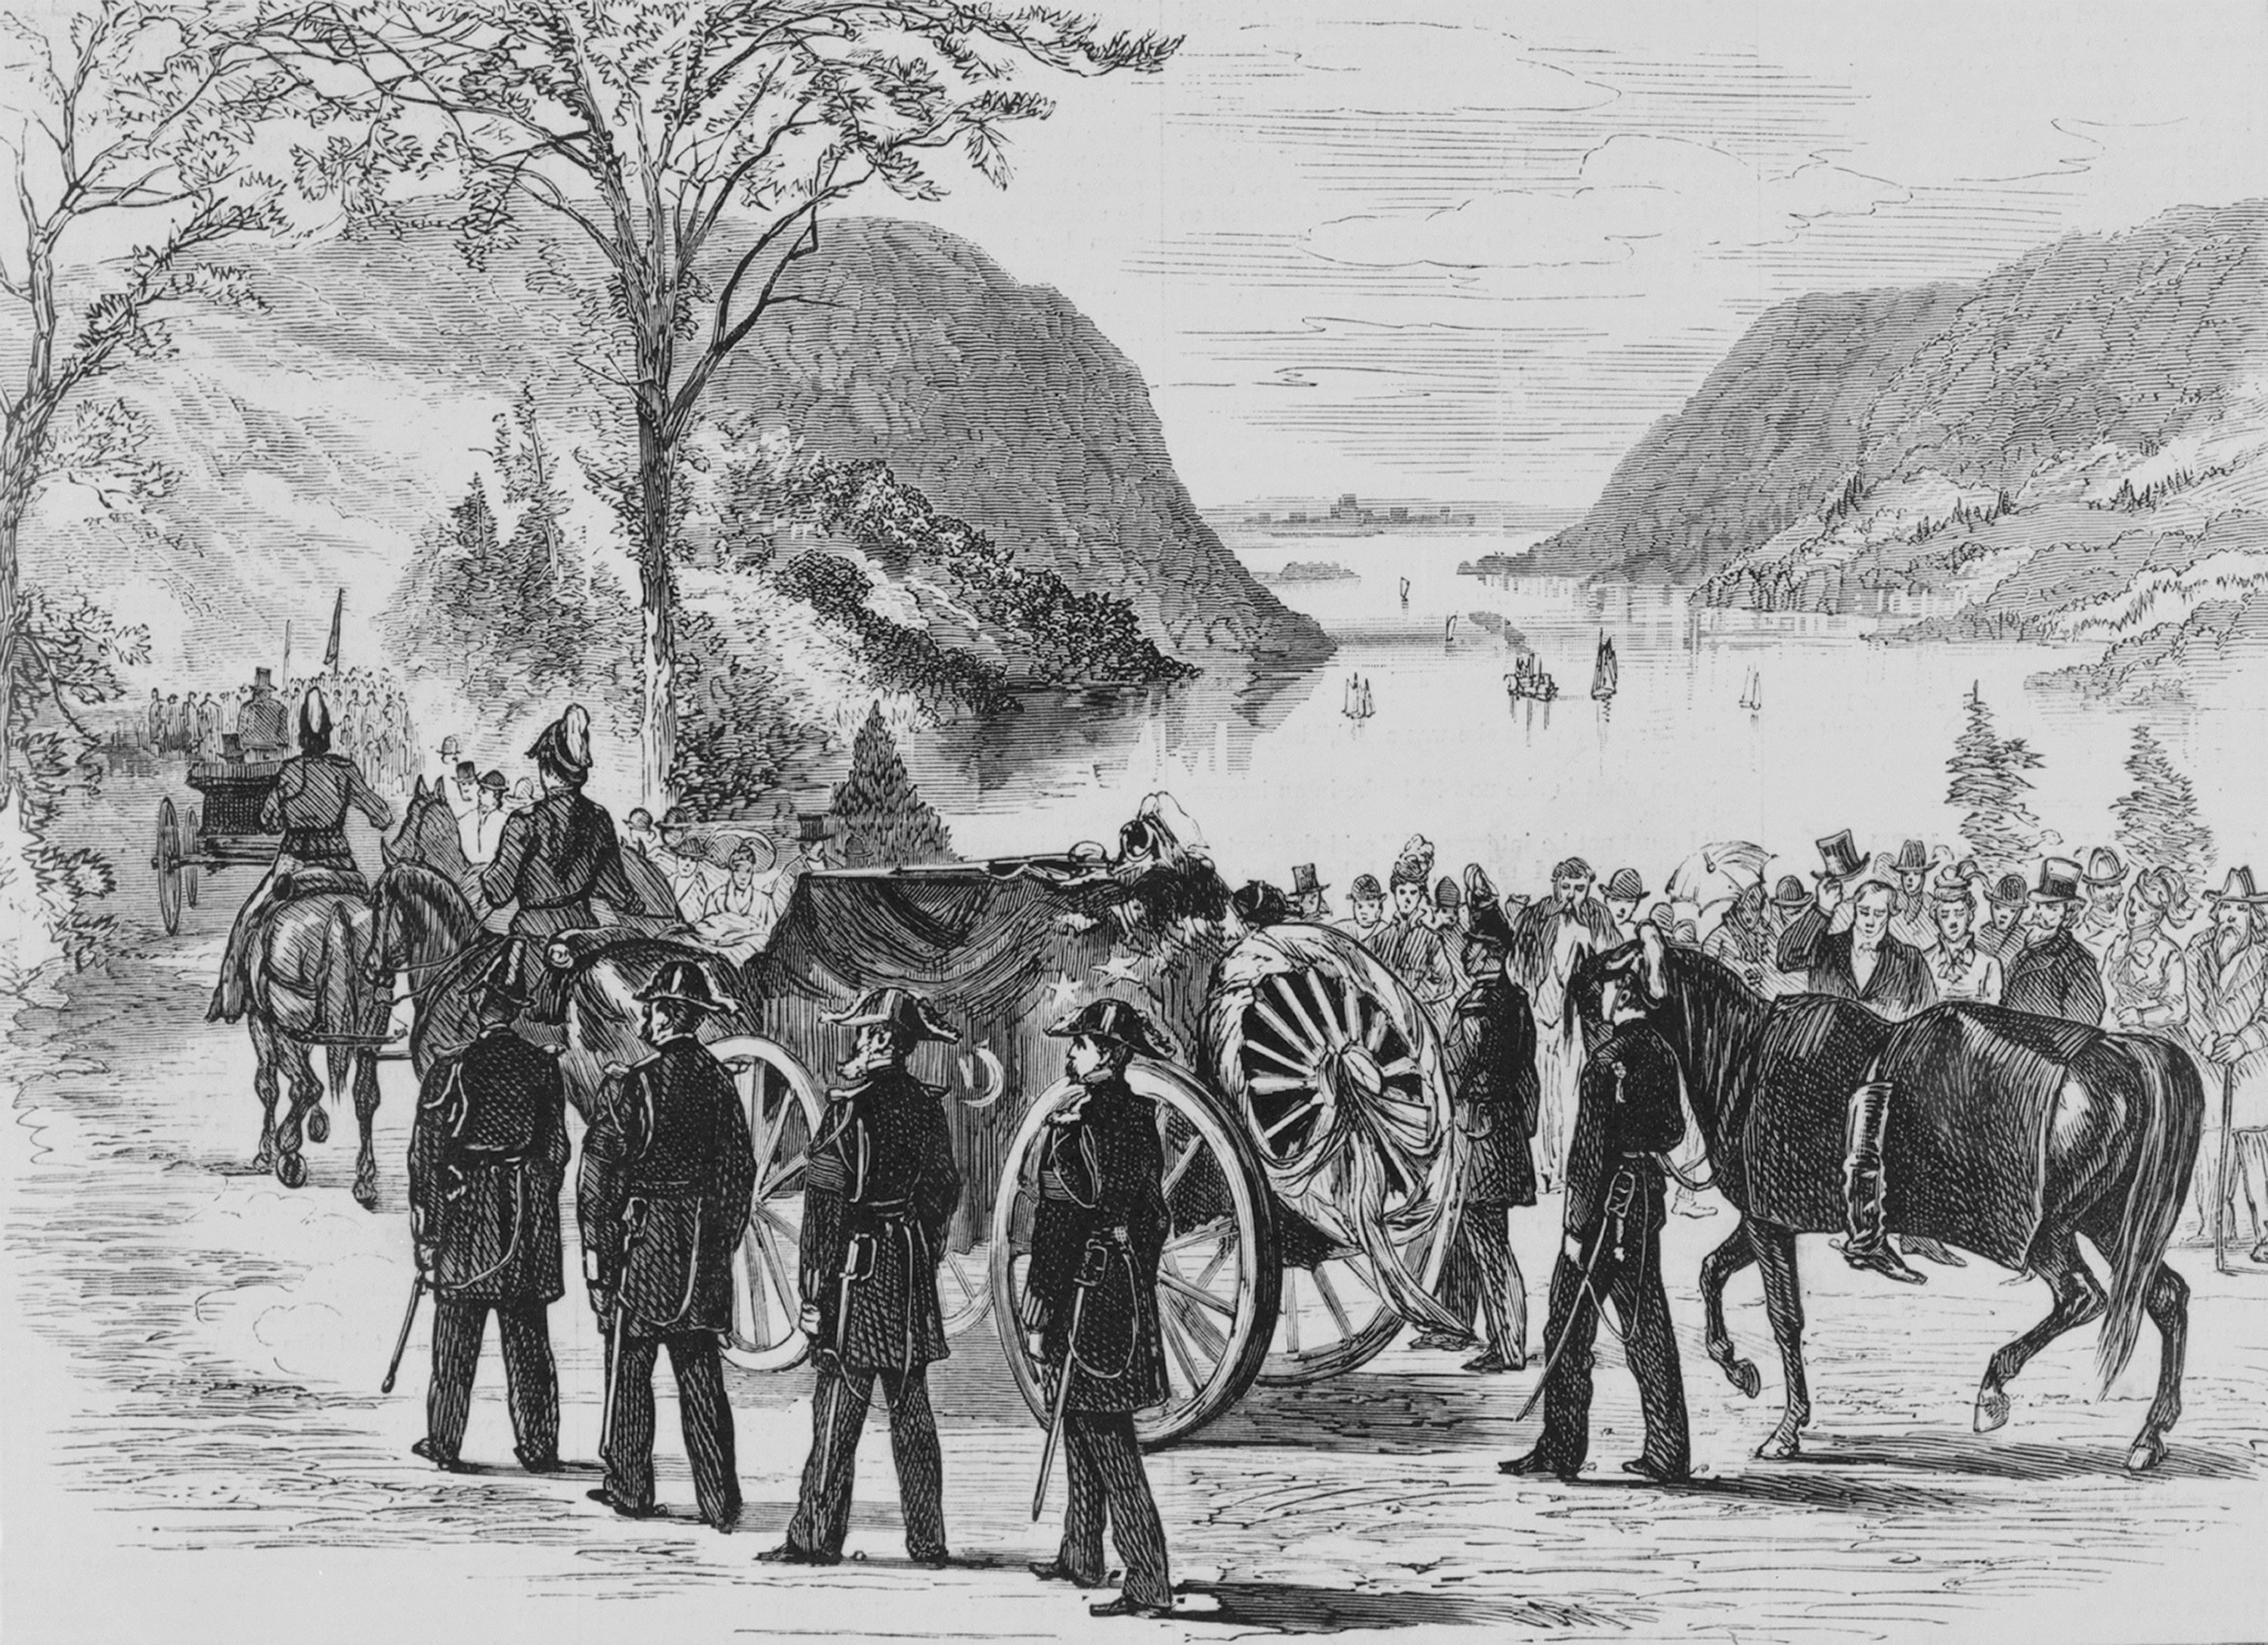 Funeral of General Custer at West Point